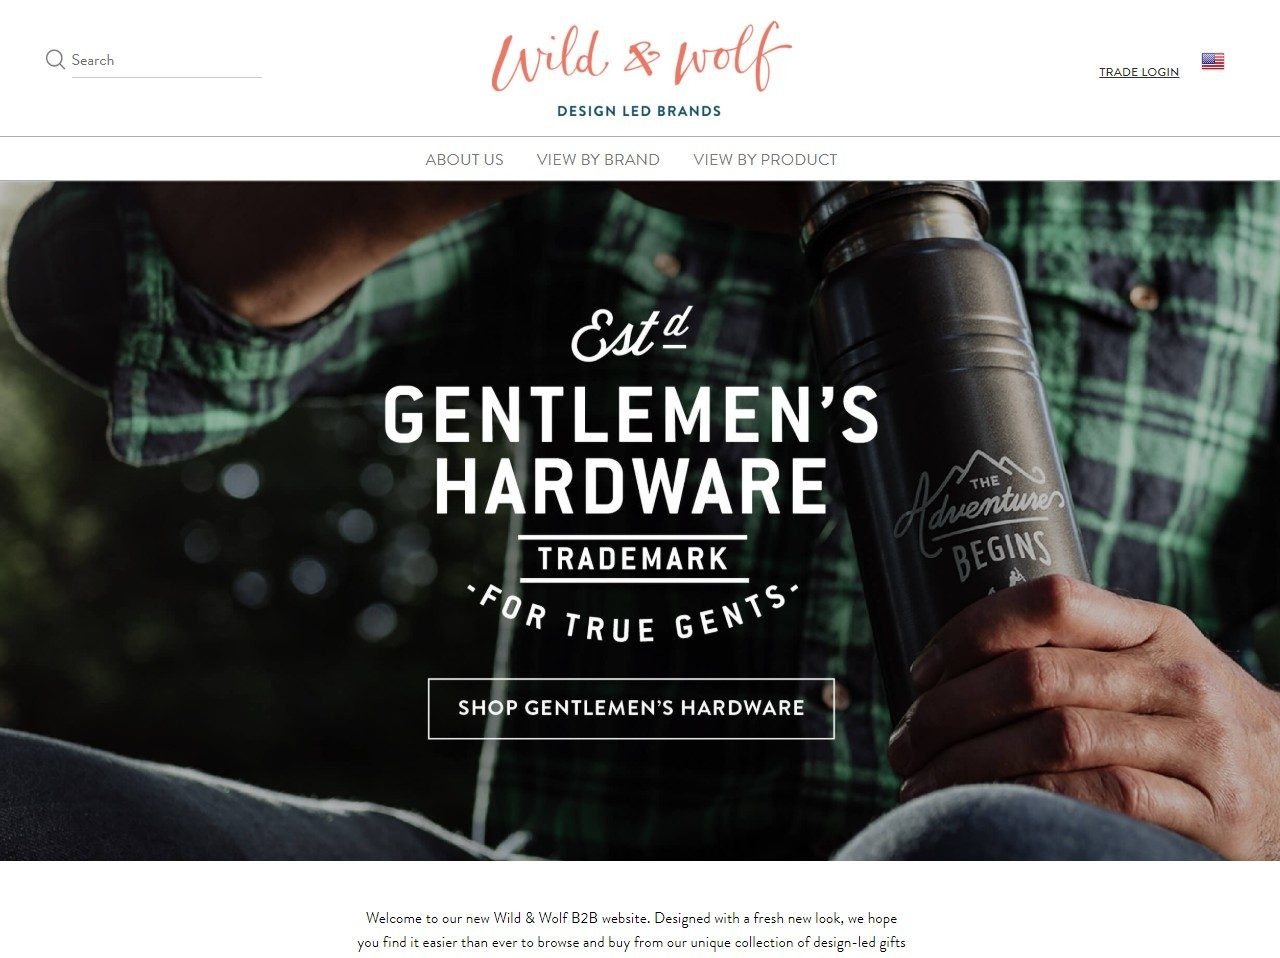 Wild & Wolf creates original, thoughtful, design-led gifts and lifestyle products.